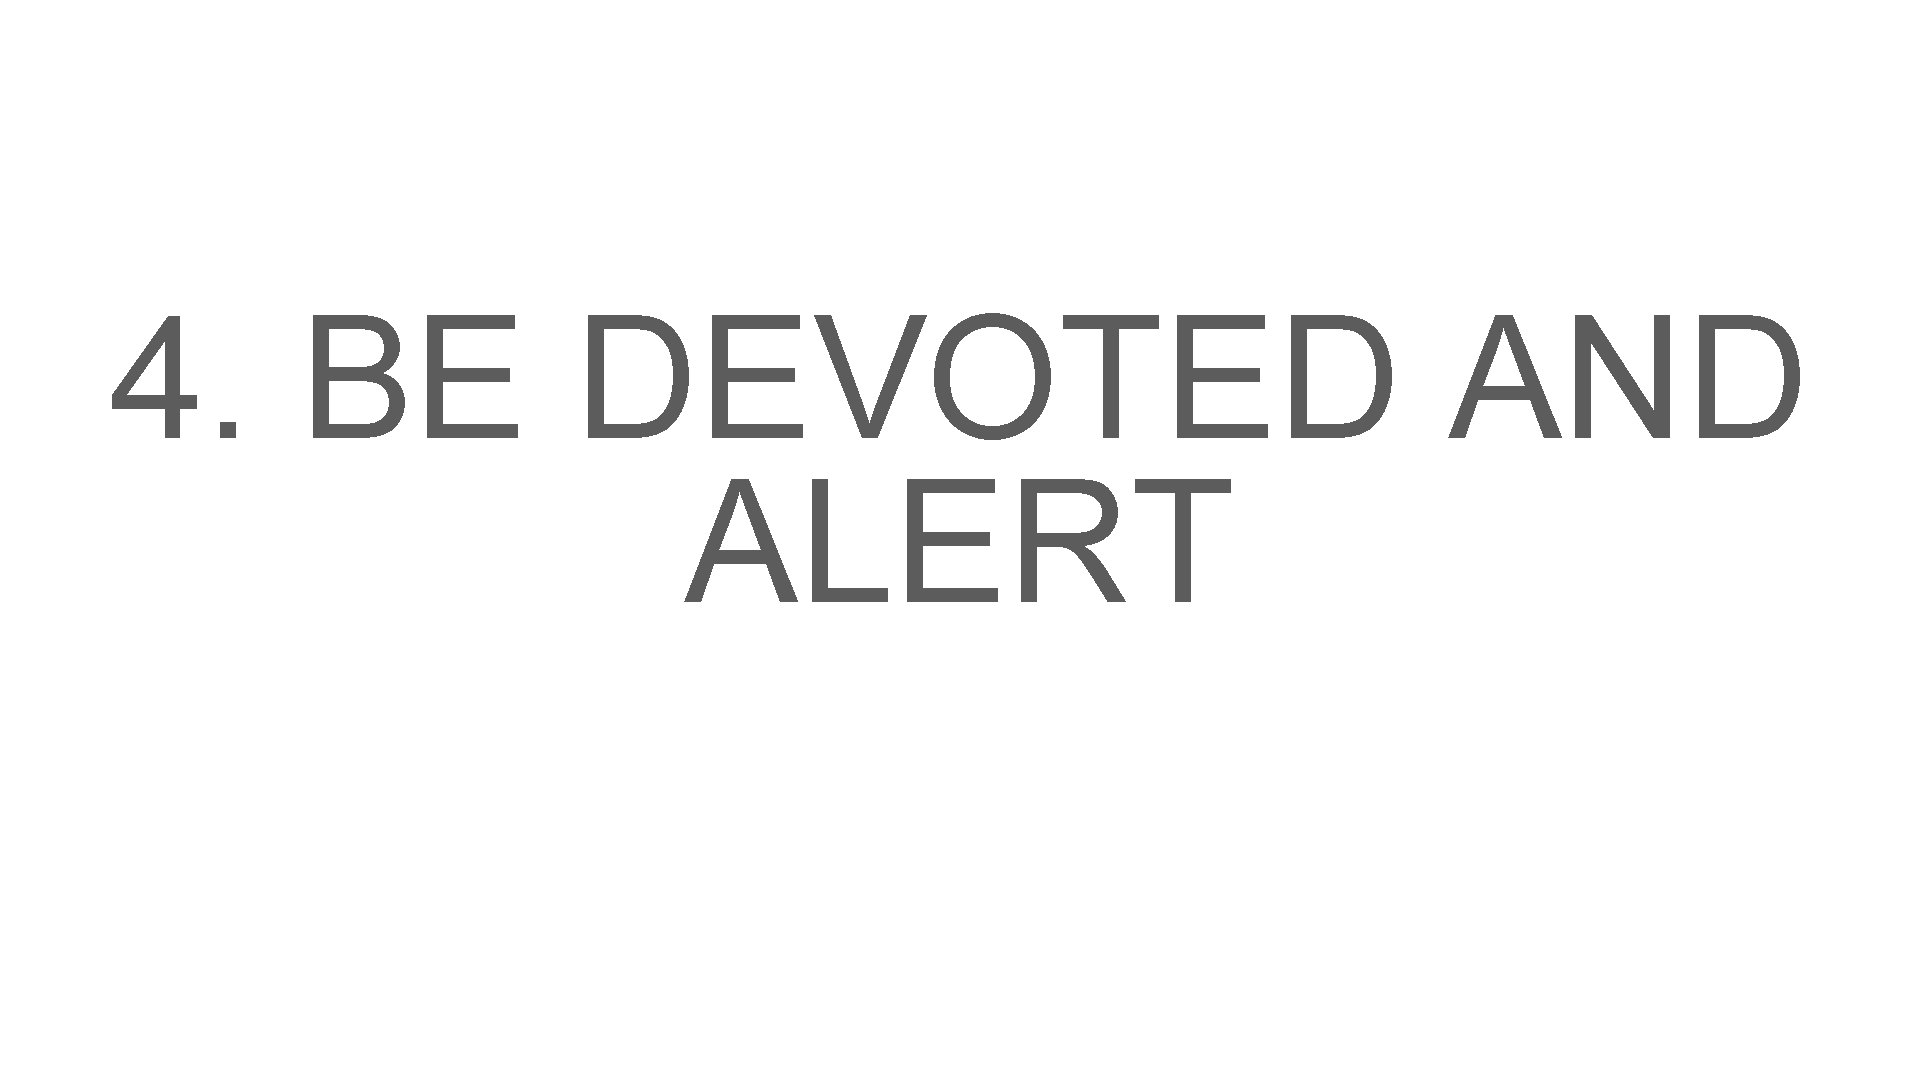 4. BE DEVOTED AND ALERT